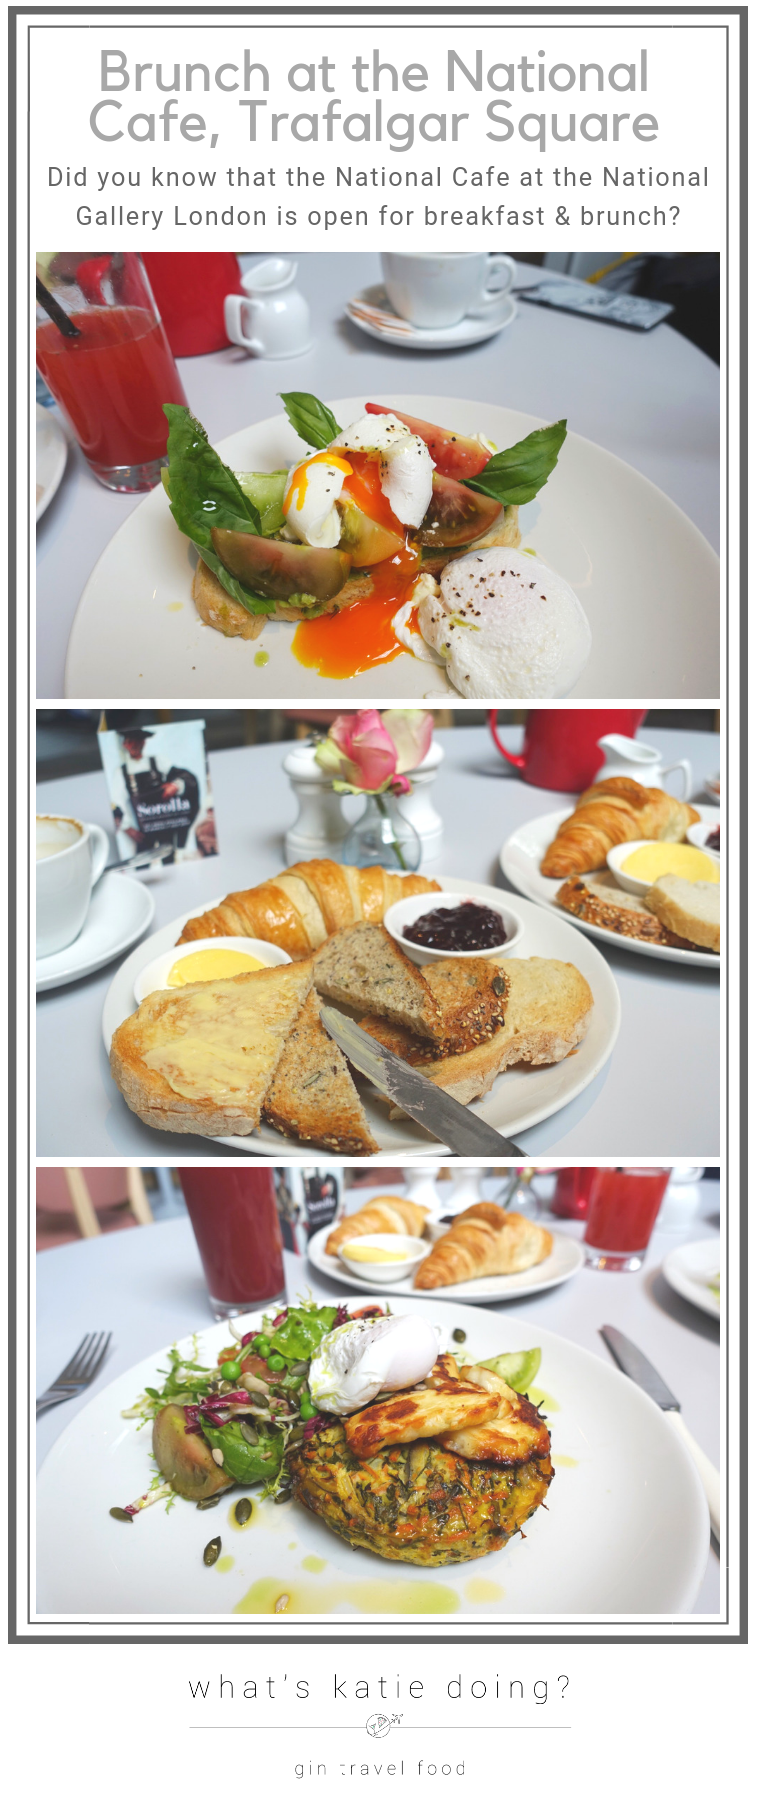 Brunch at the National Cafe, Trafalgar Square, London